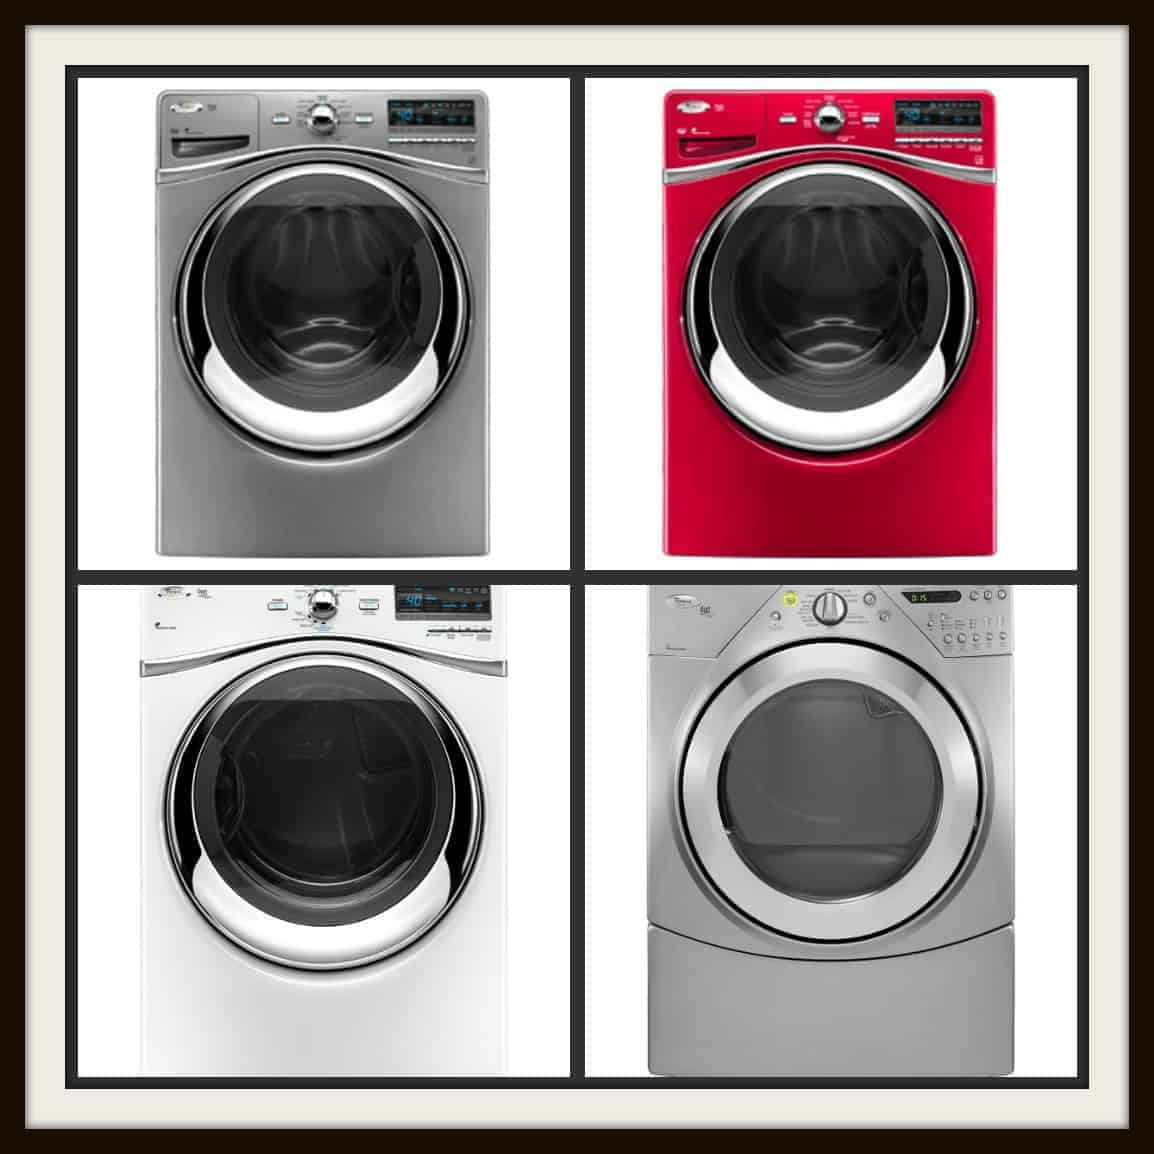 Final Thoughts On Whirlpool Duet Washer And Dryer